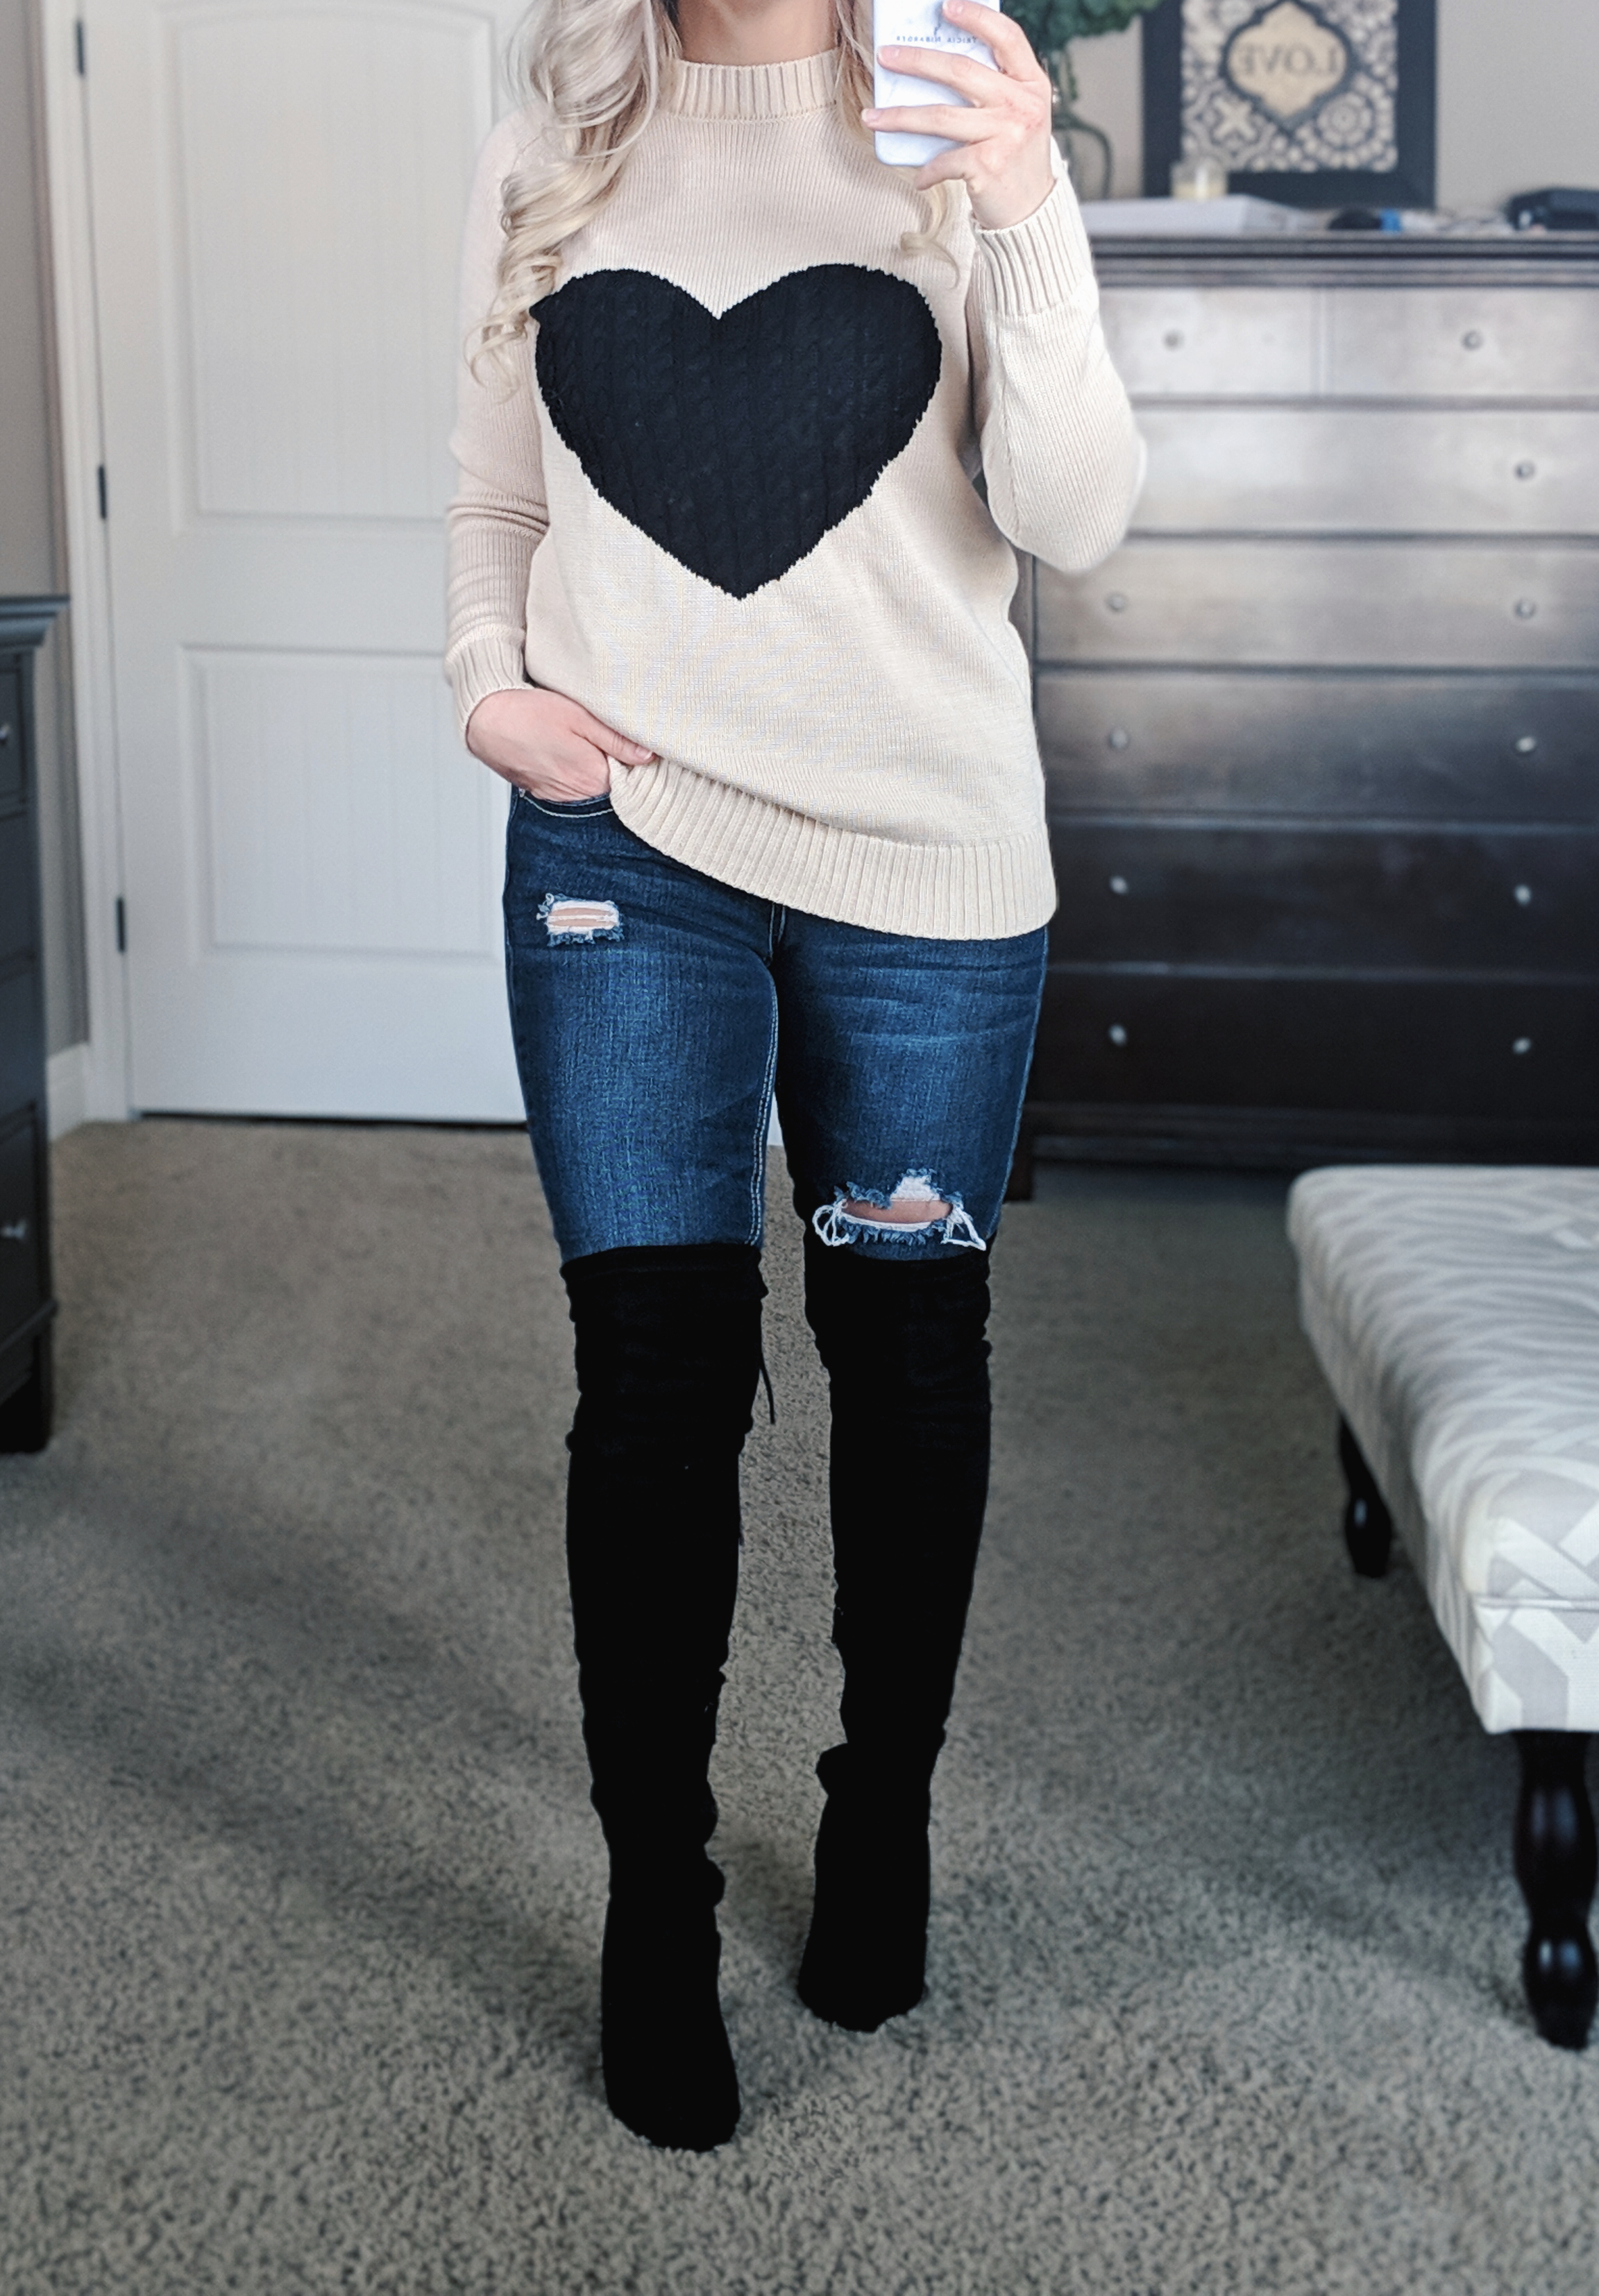 Cute Valentine's Day Outfit Ideas for Women: 5 affordable outfits from Amazon that will be perfect for Valentine's Day 2019! This fashion blogger try-on haul includes sexy Valentine's Day outfits, heart sweaters, heart pom cardigans, and more. Get the cutest affordable fashion for Valentine's Day with these inspiring looks!